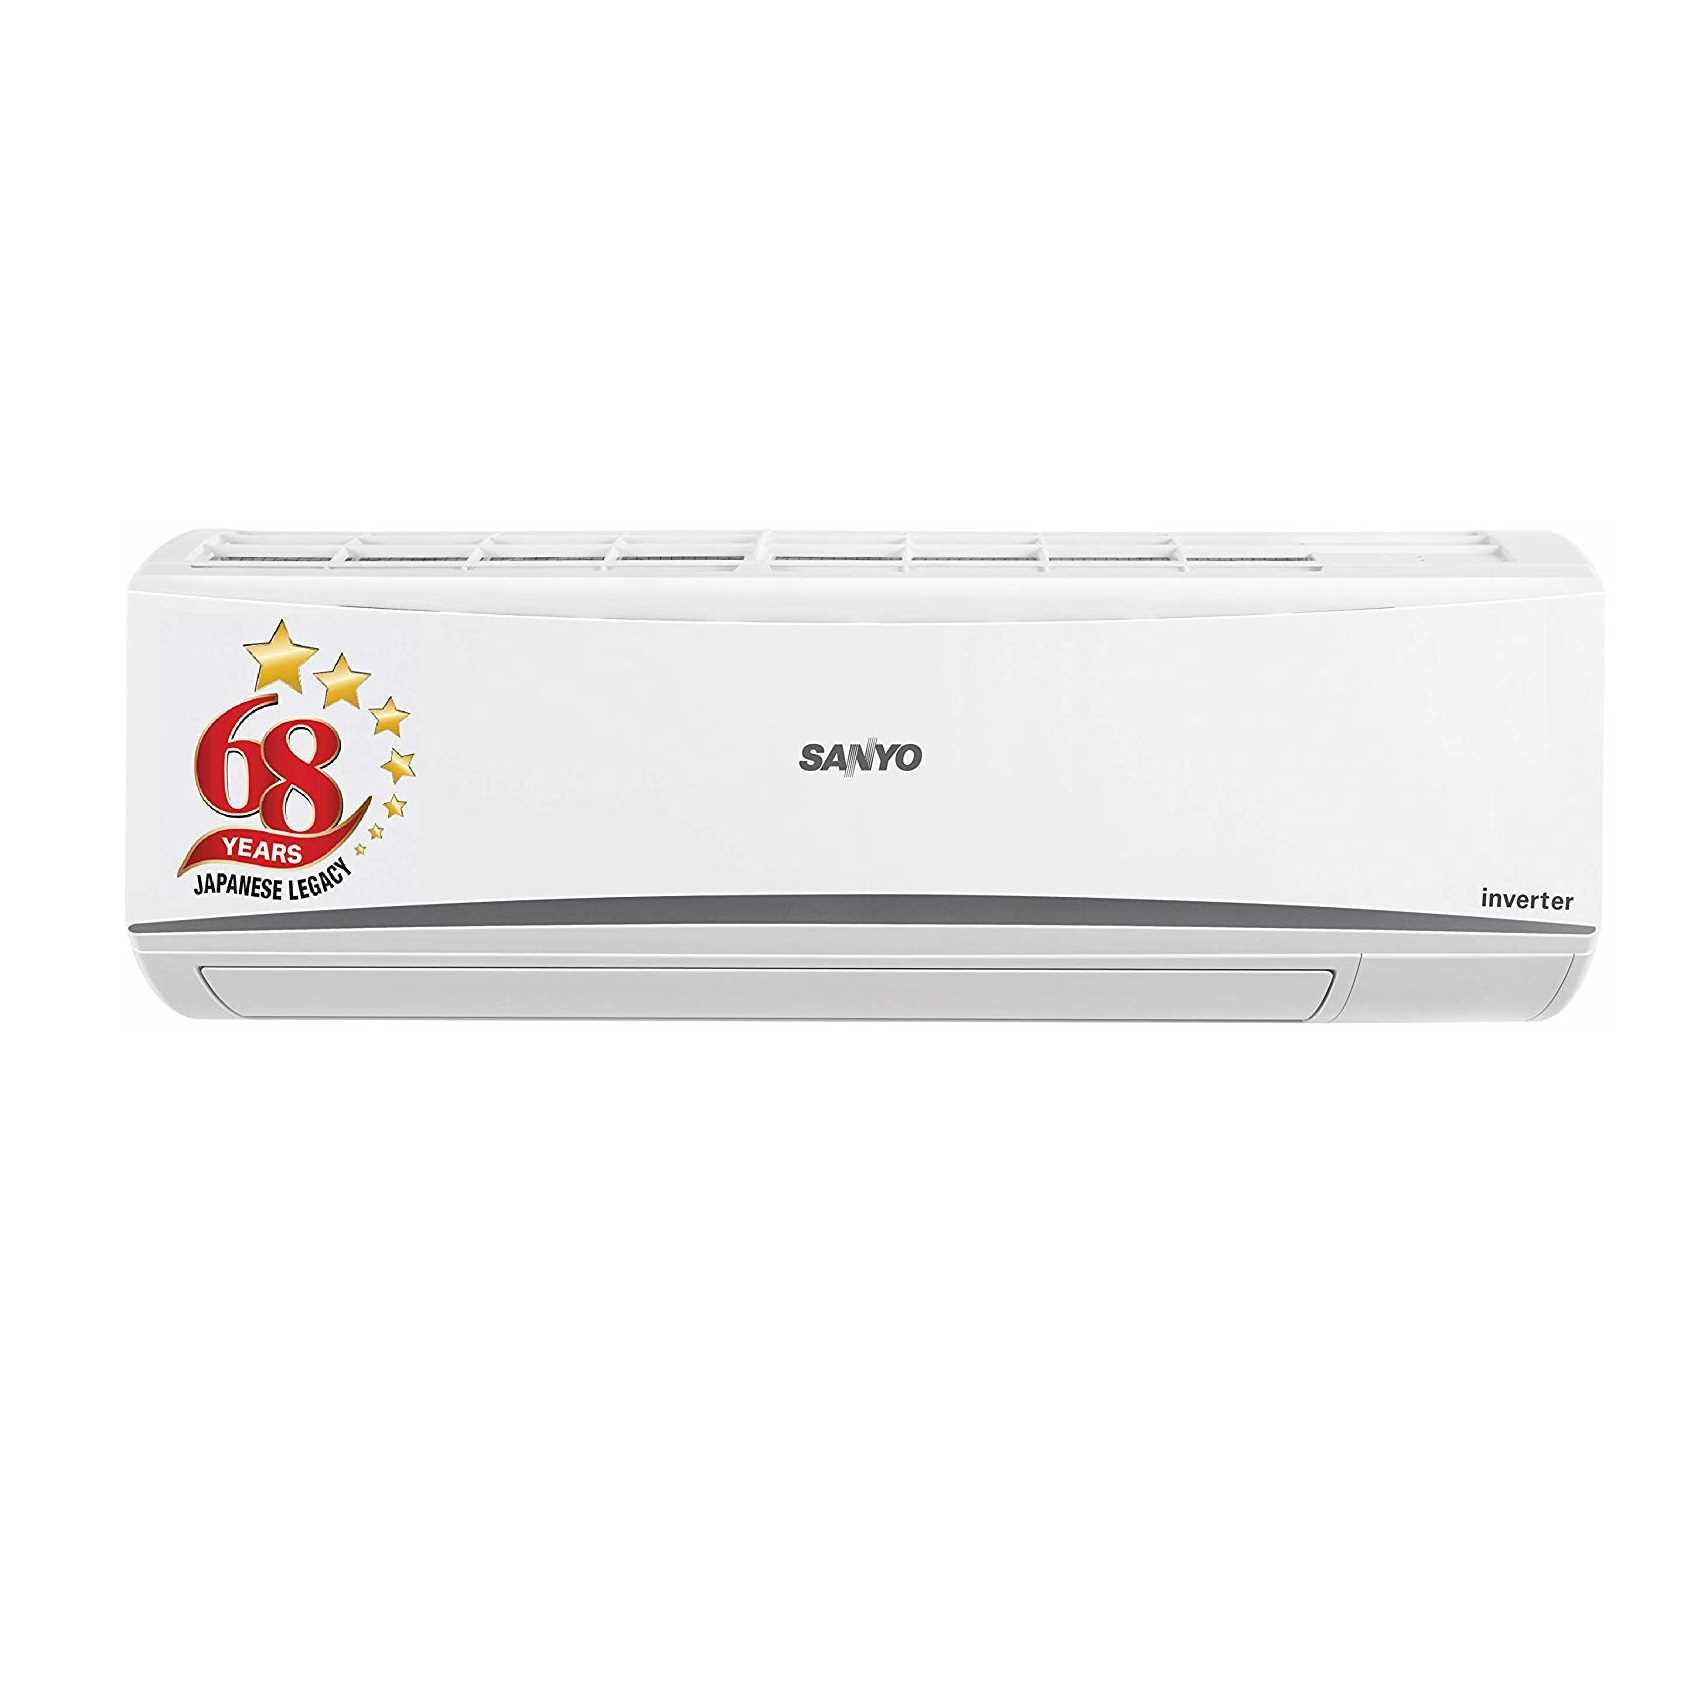 Sanyo SI-SO-10T5SCIA 1 Ton 5 Star Inverter Split AC